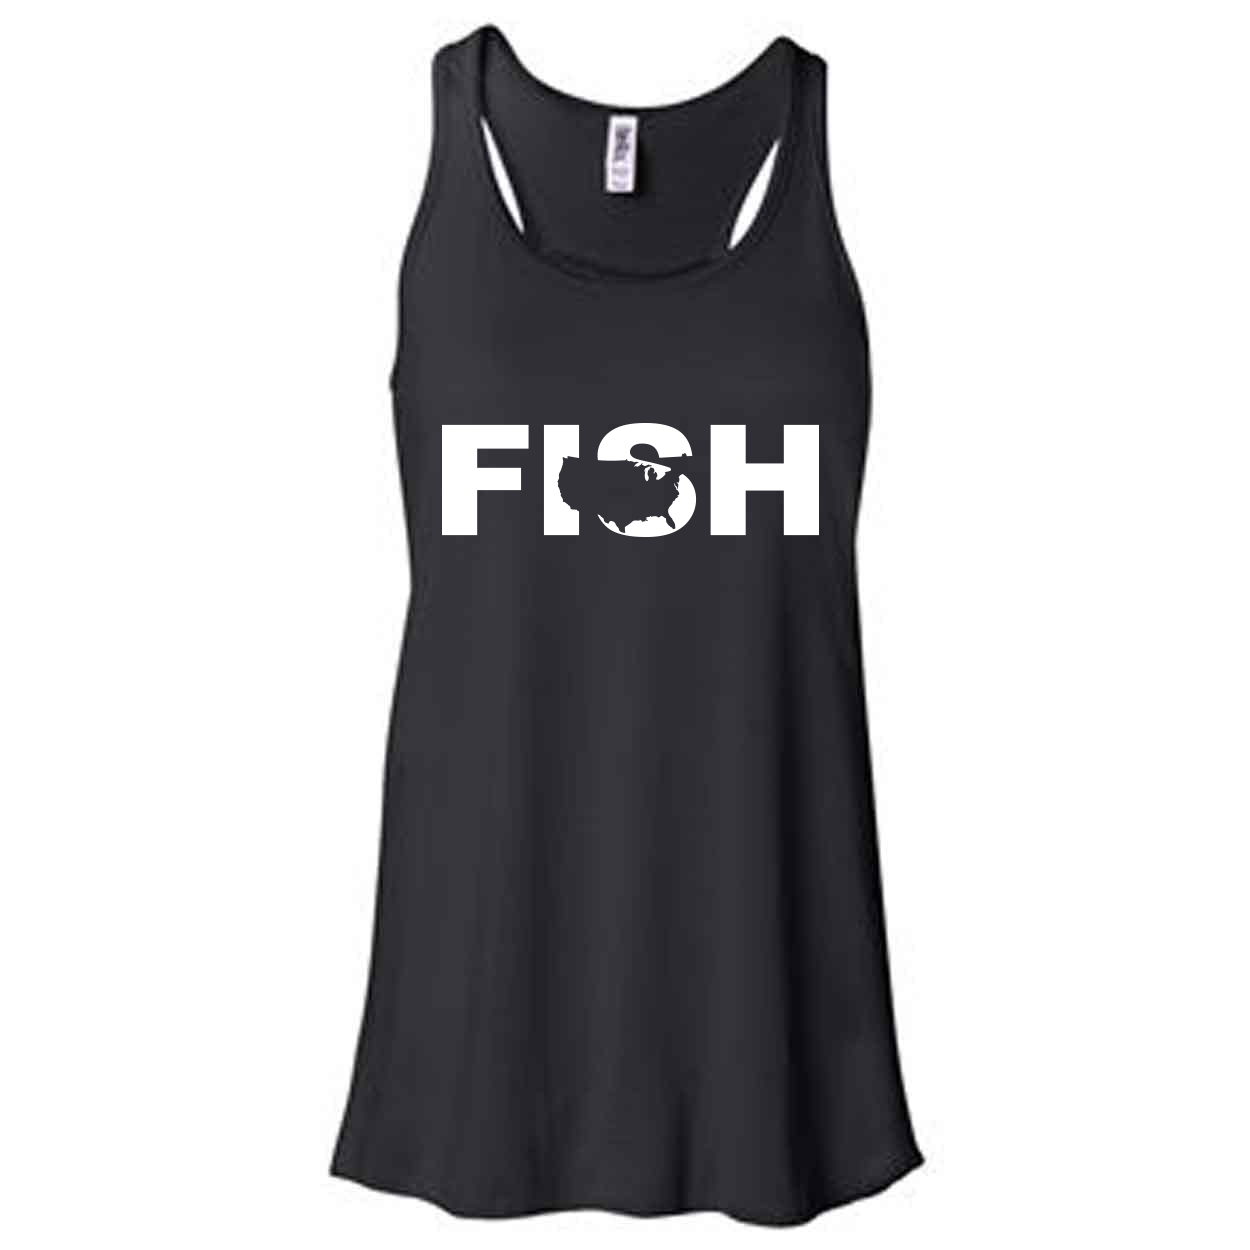 Fish United States Classic Women's Flowy Racerback Tank Top Black (White Logo)